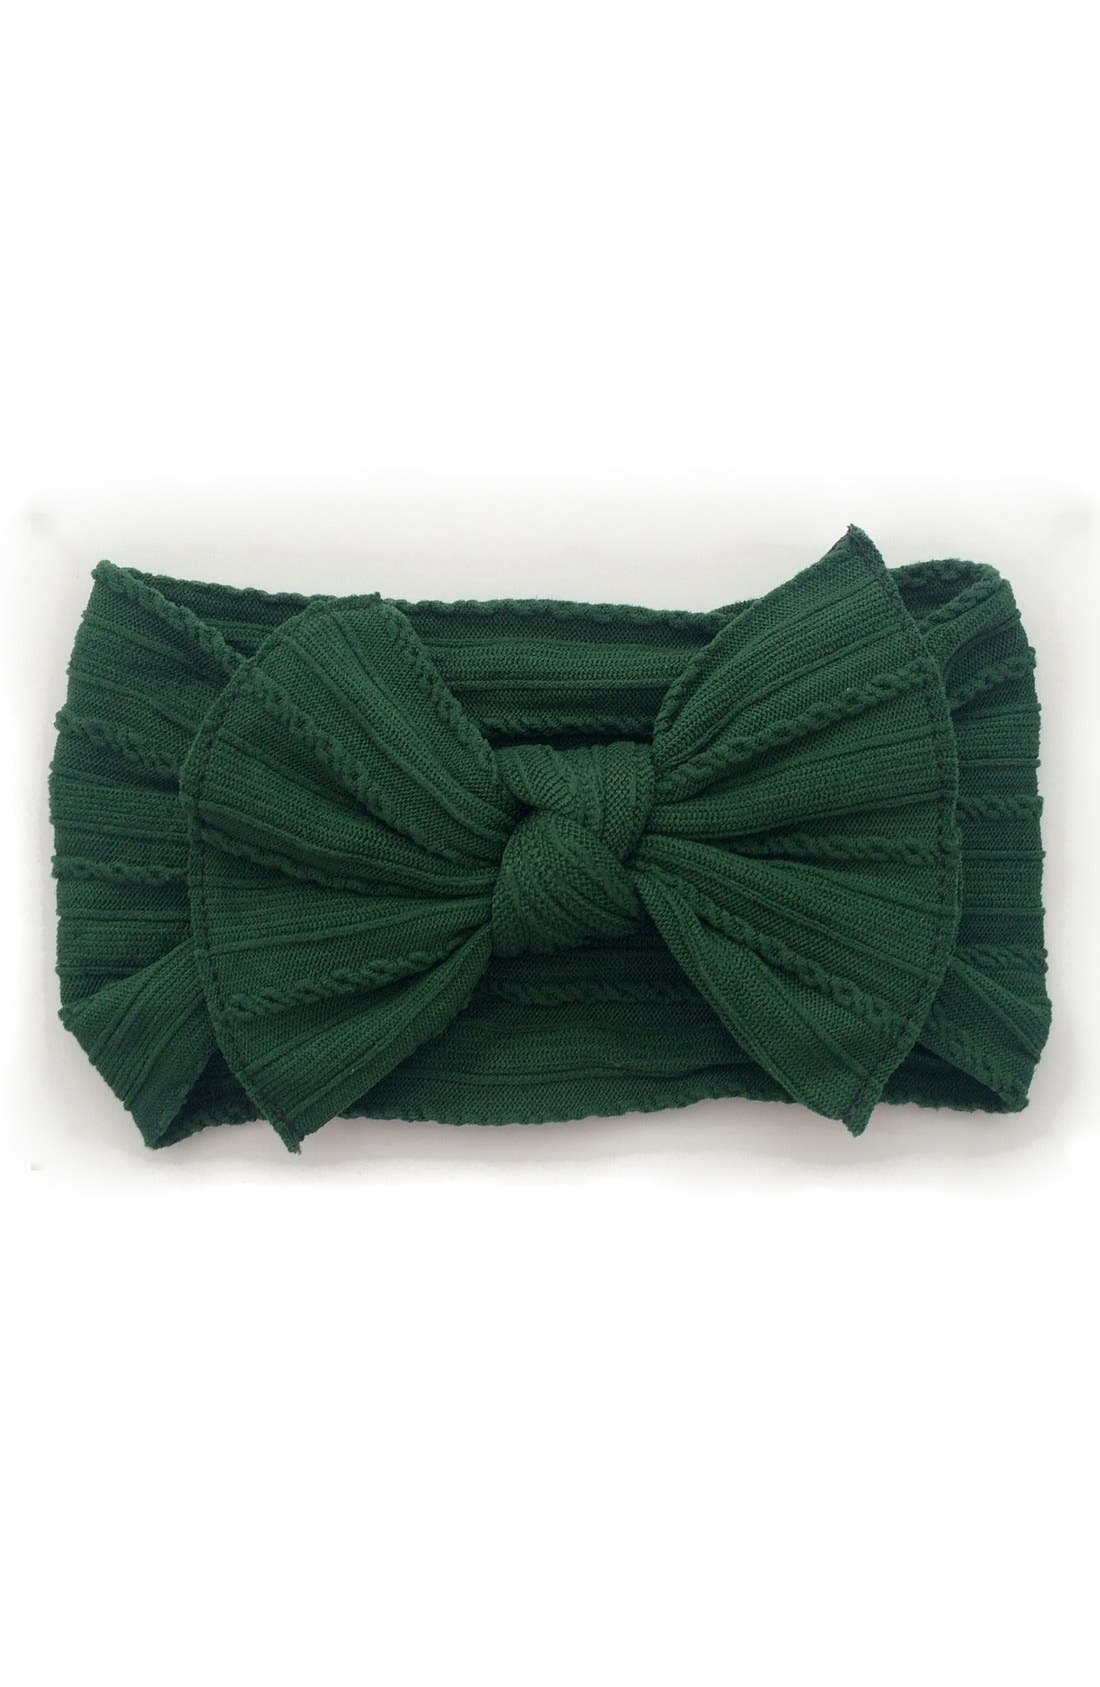 Main Image - Baby Bling Bow Headband (Baby)